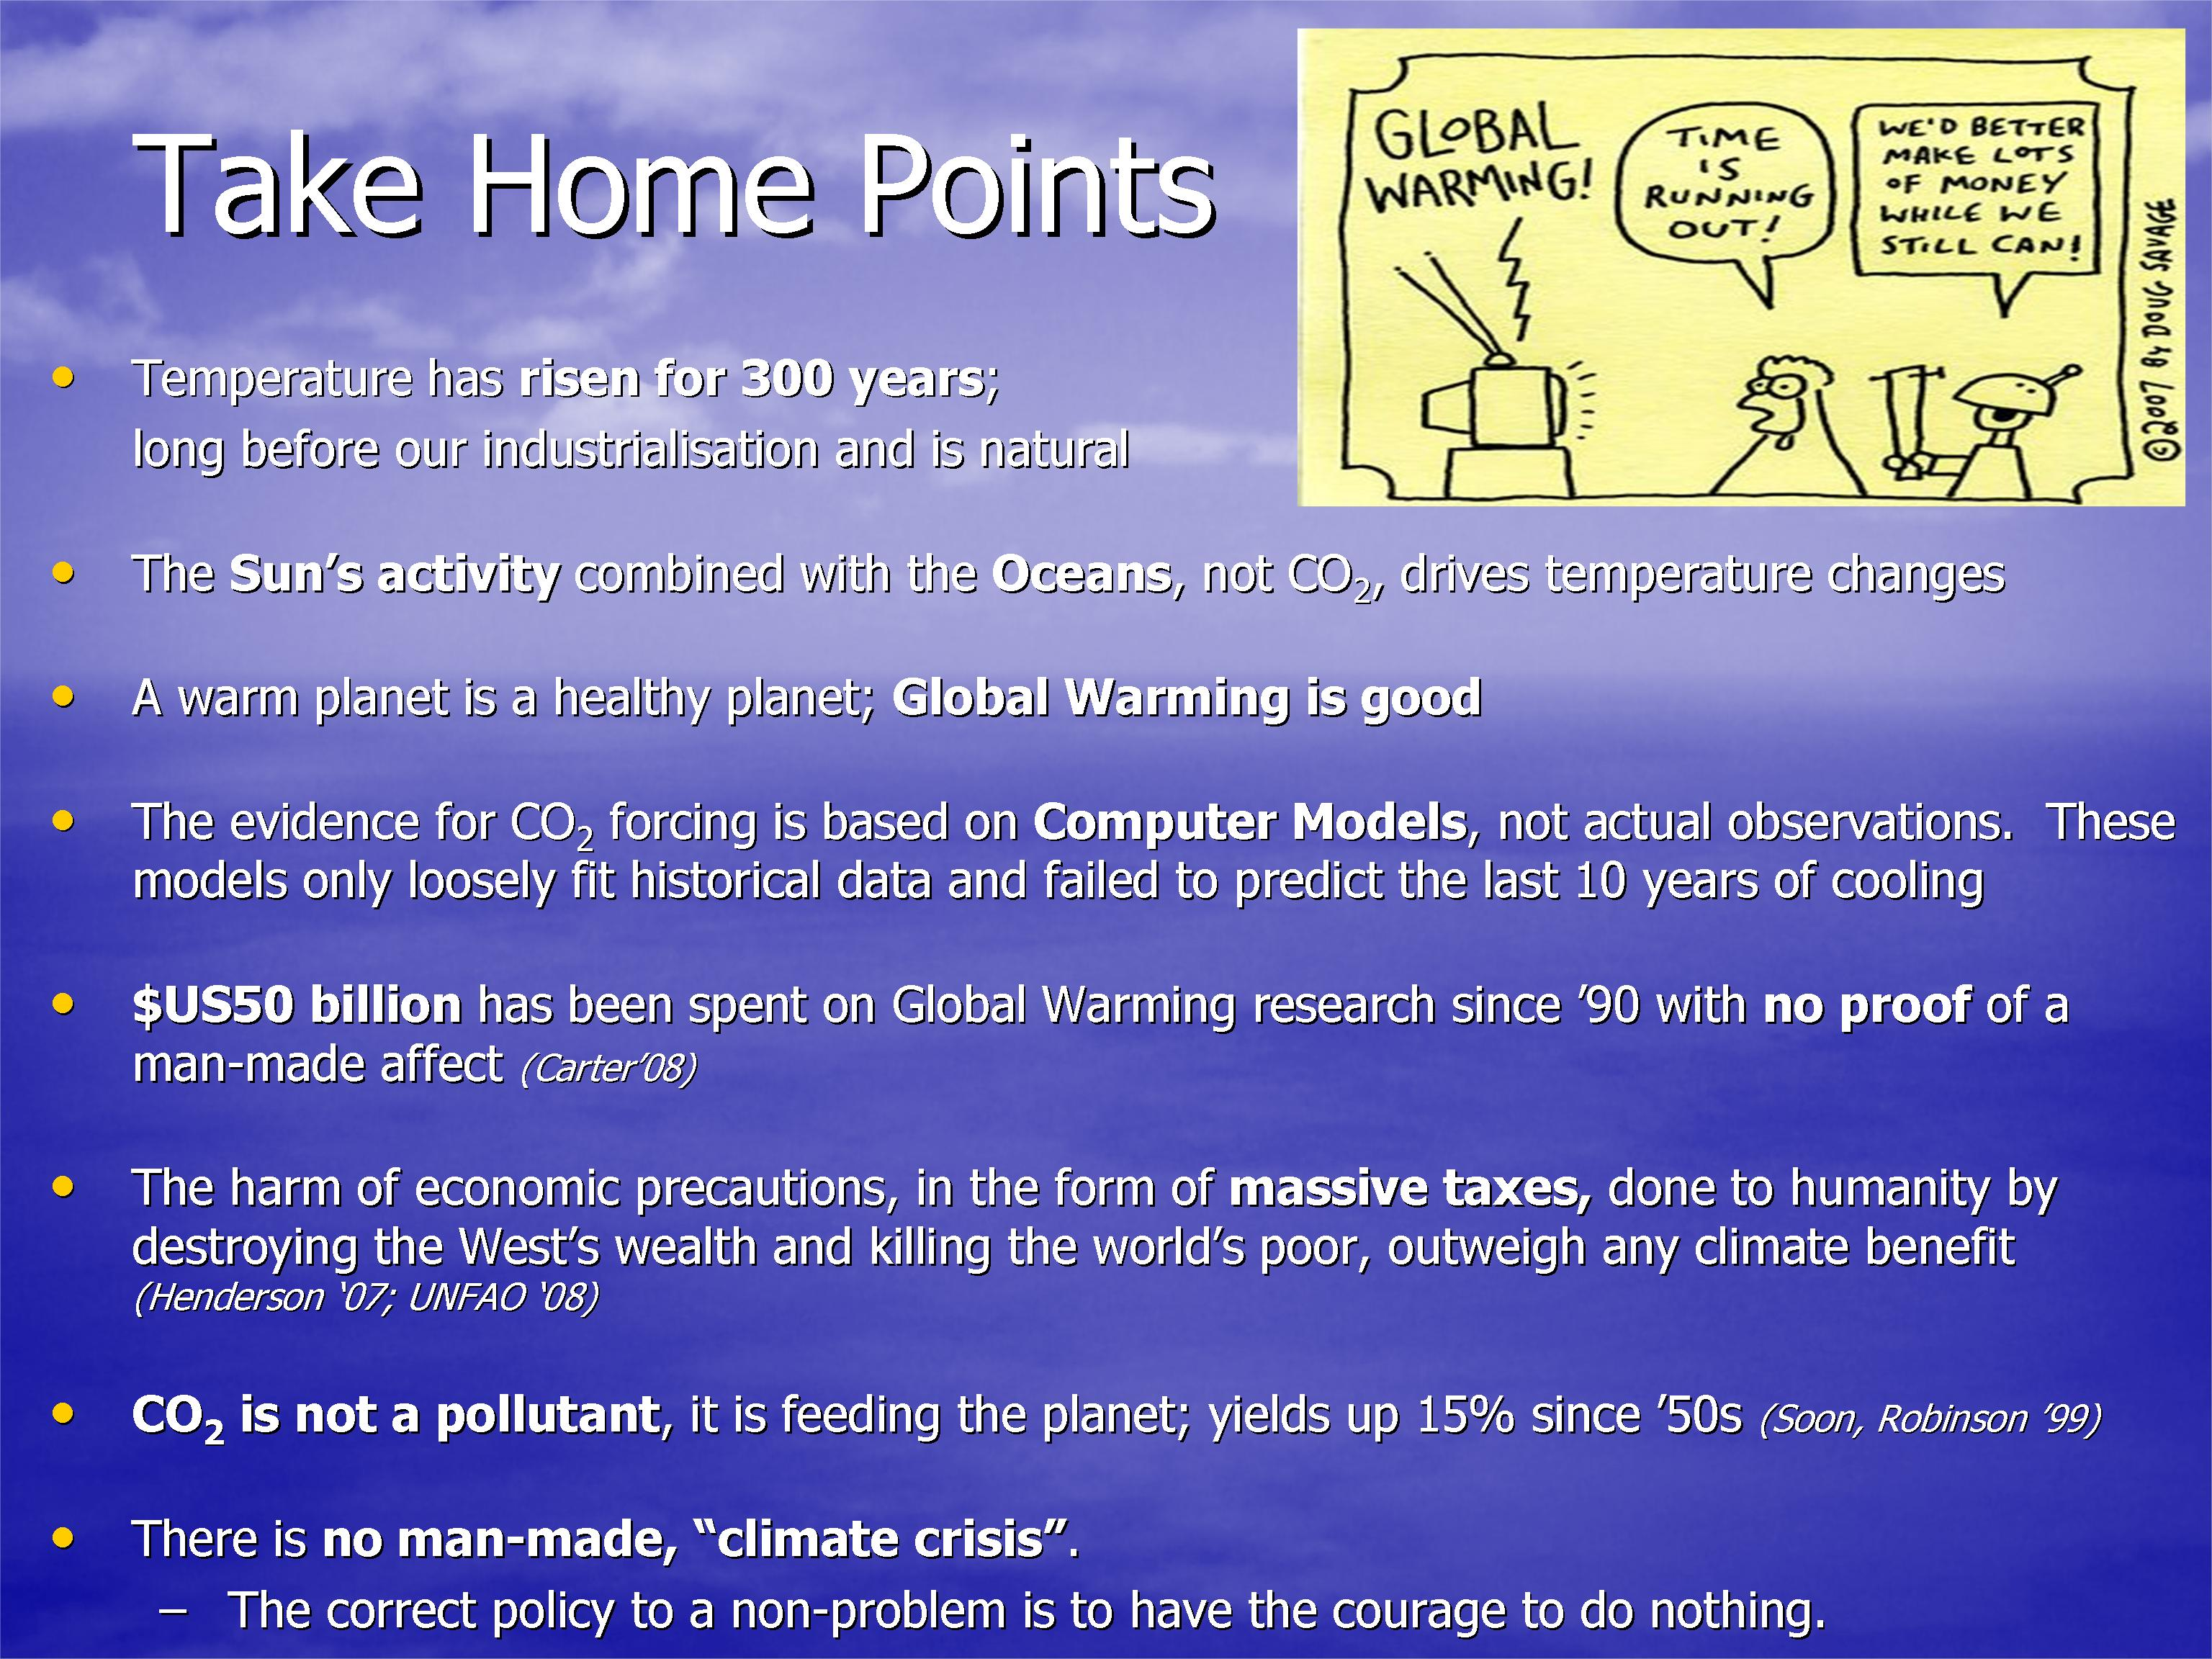 result of global warming essay The sensible approach is to use separate paragraphs for each point my essay below is divided into two main topic paragraphs you could use three if you wanted to write a separate paragraph for government and individual actions in conclusion, while global warming is a serious threat to humanity.